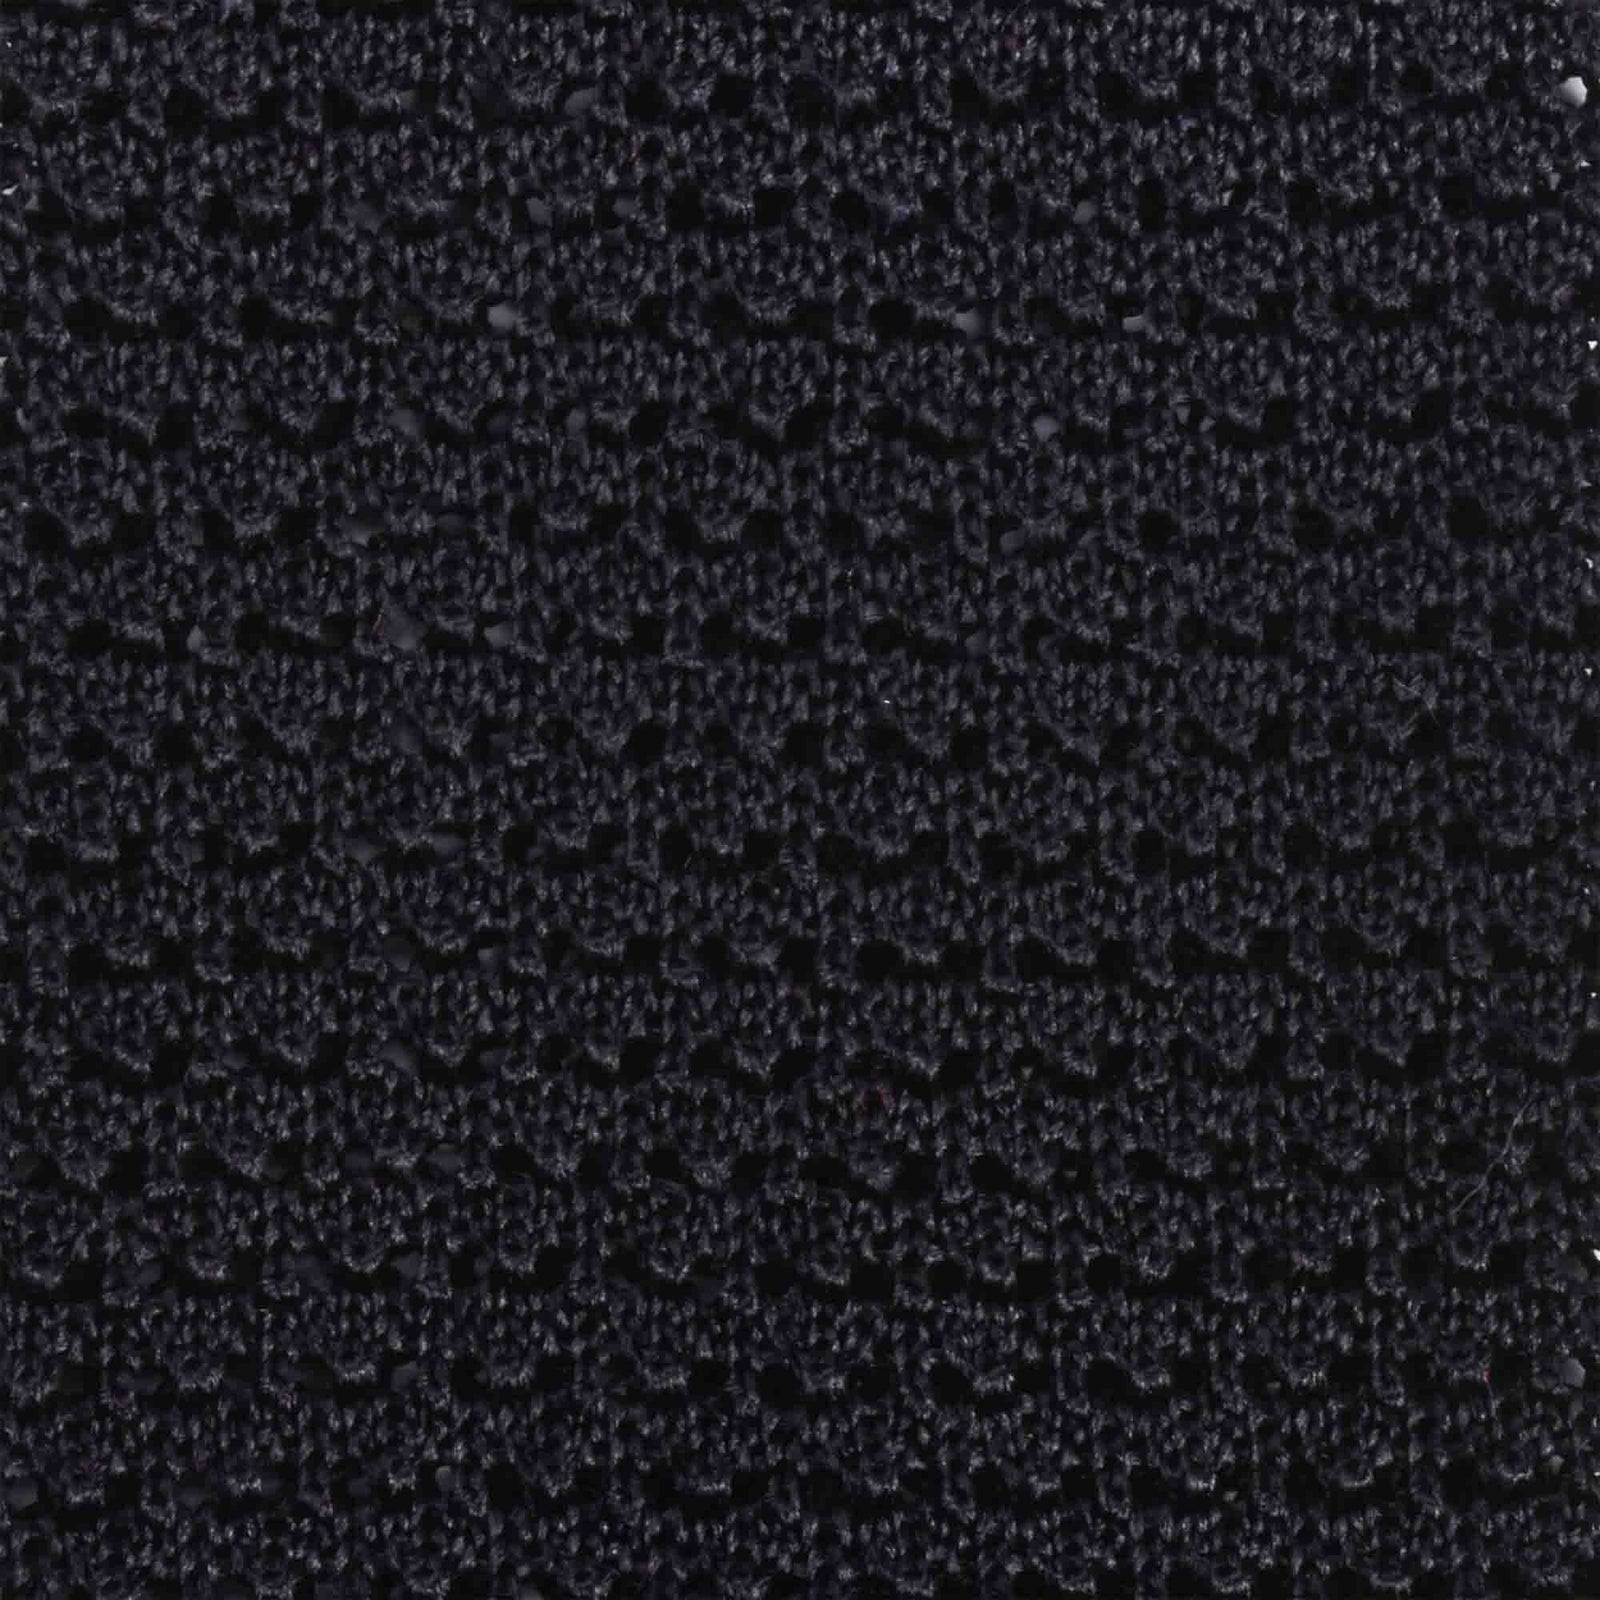 Black crochet knitted tie - serafinesilk